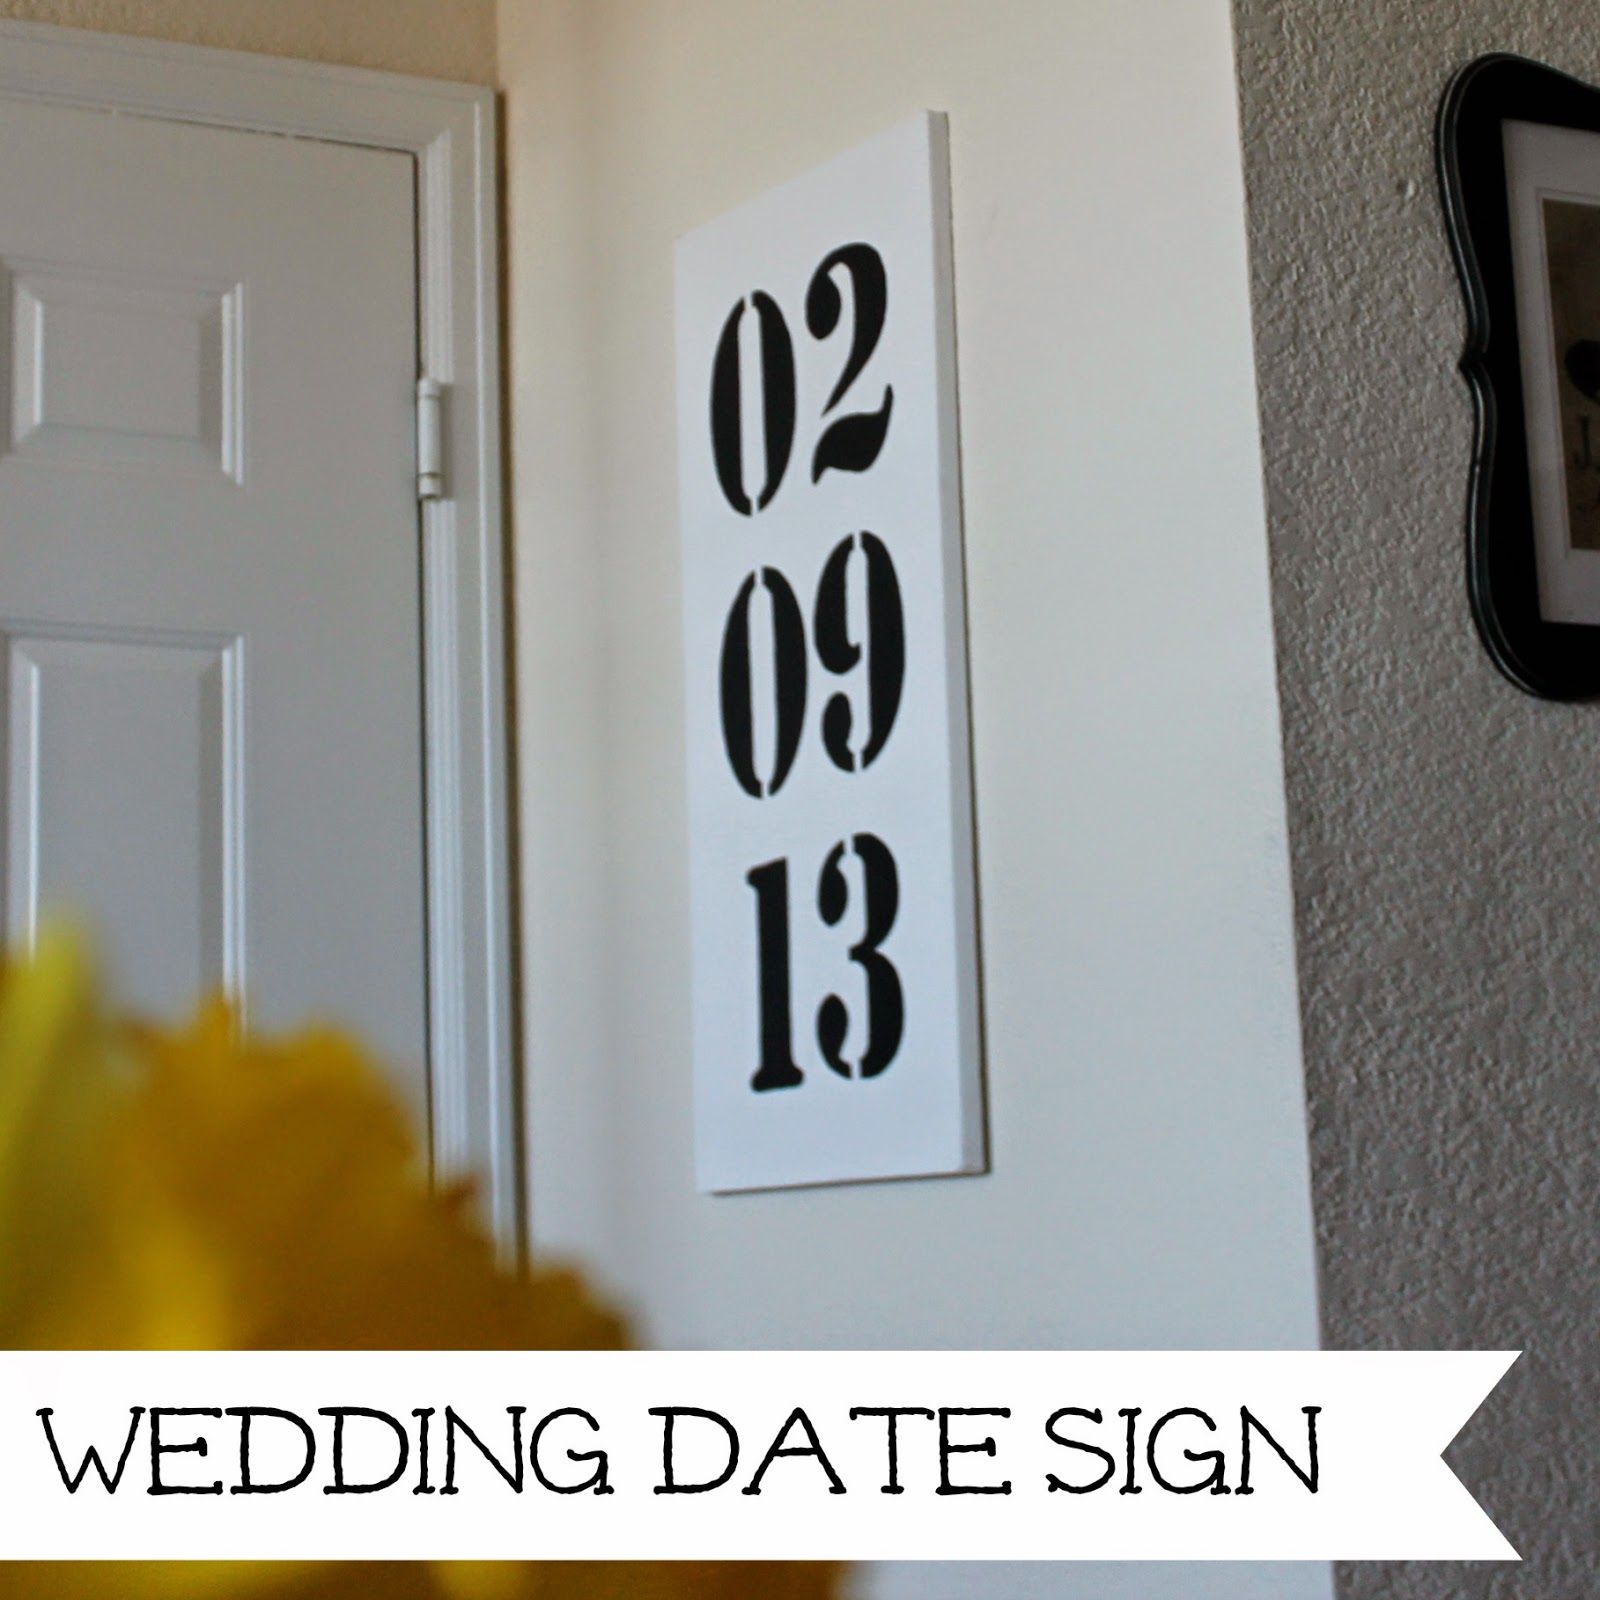 http://wonderfullymadebyleslie.blogspot.com/2014/03/diy-wedding-date-sign.html